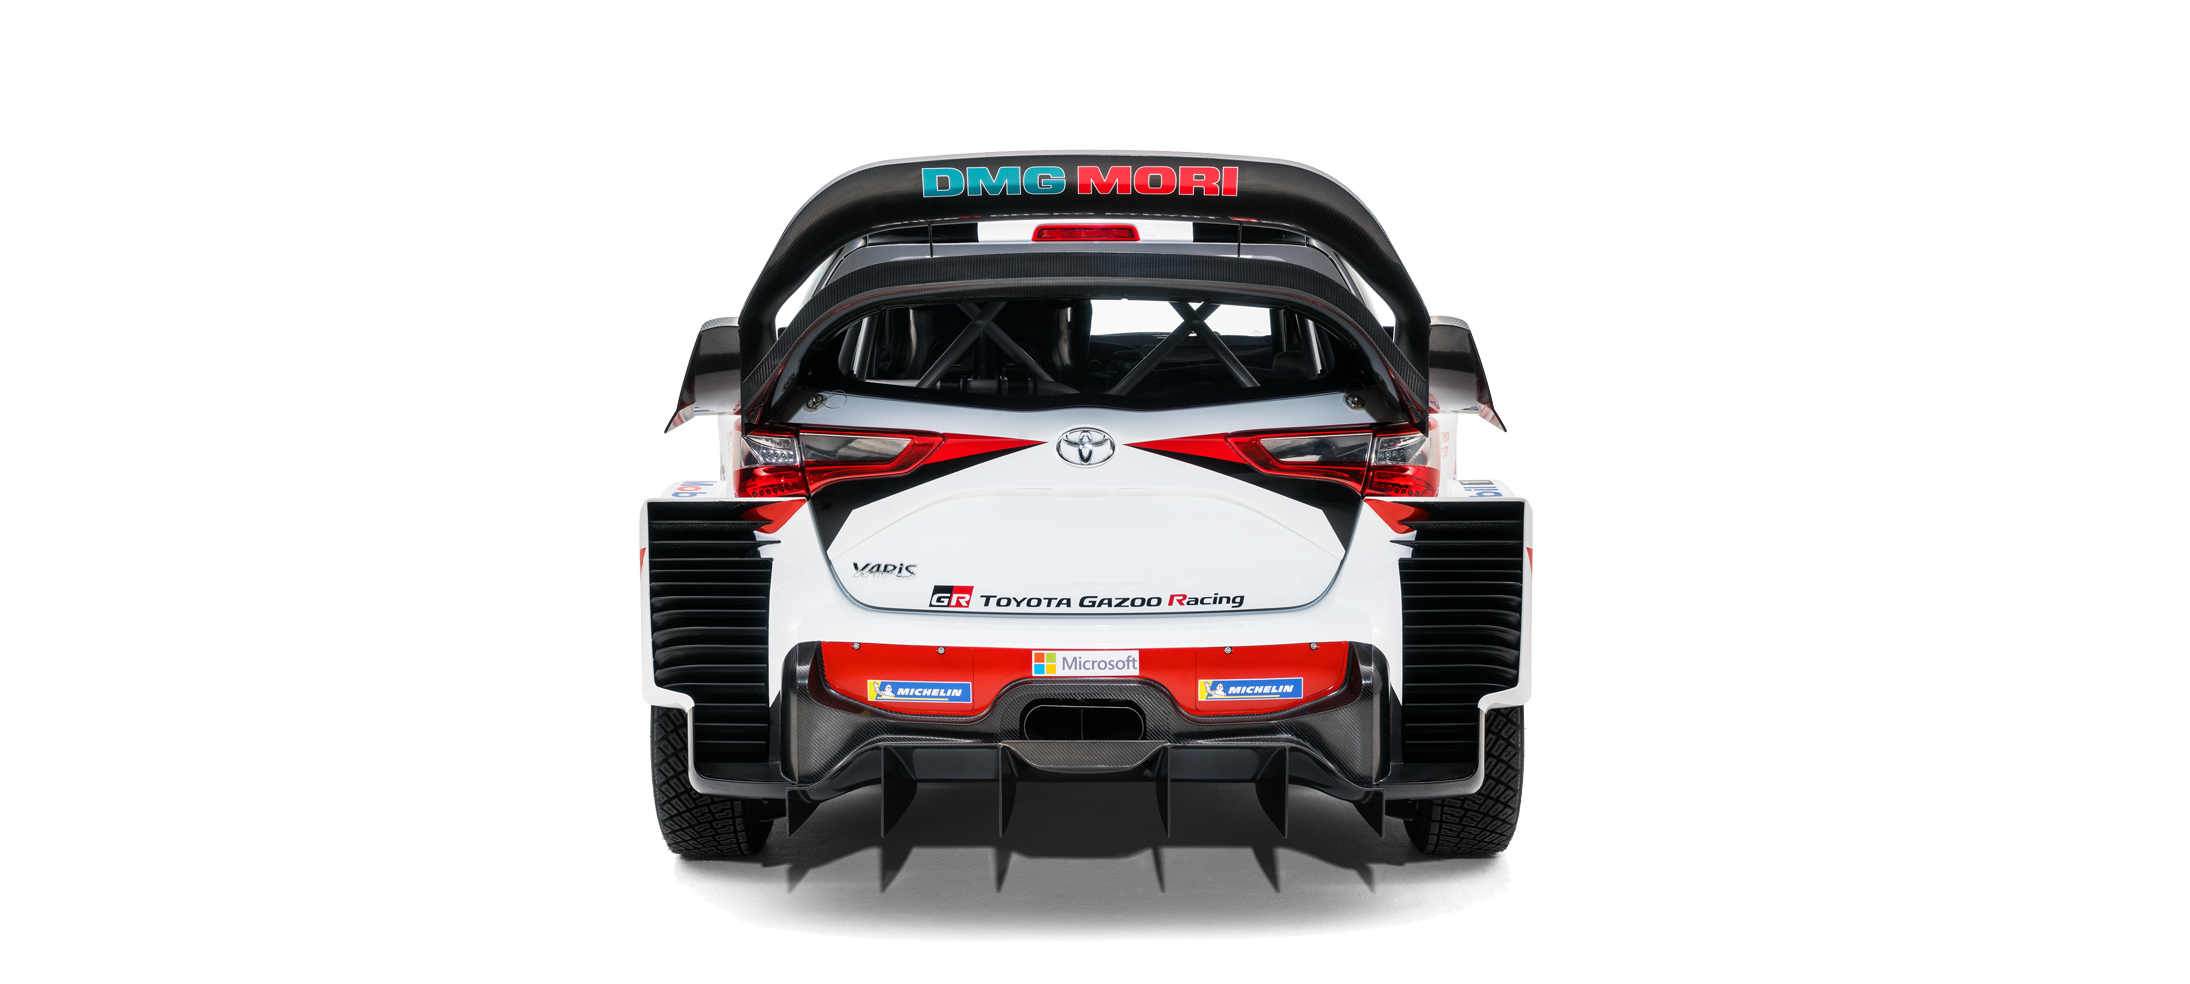 Yaris WRC Test Car image 04